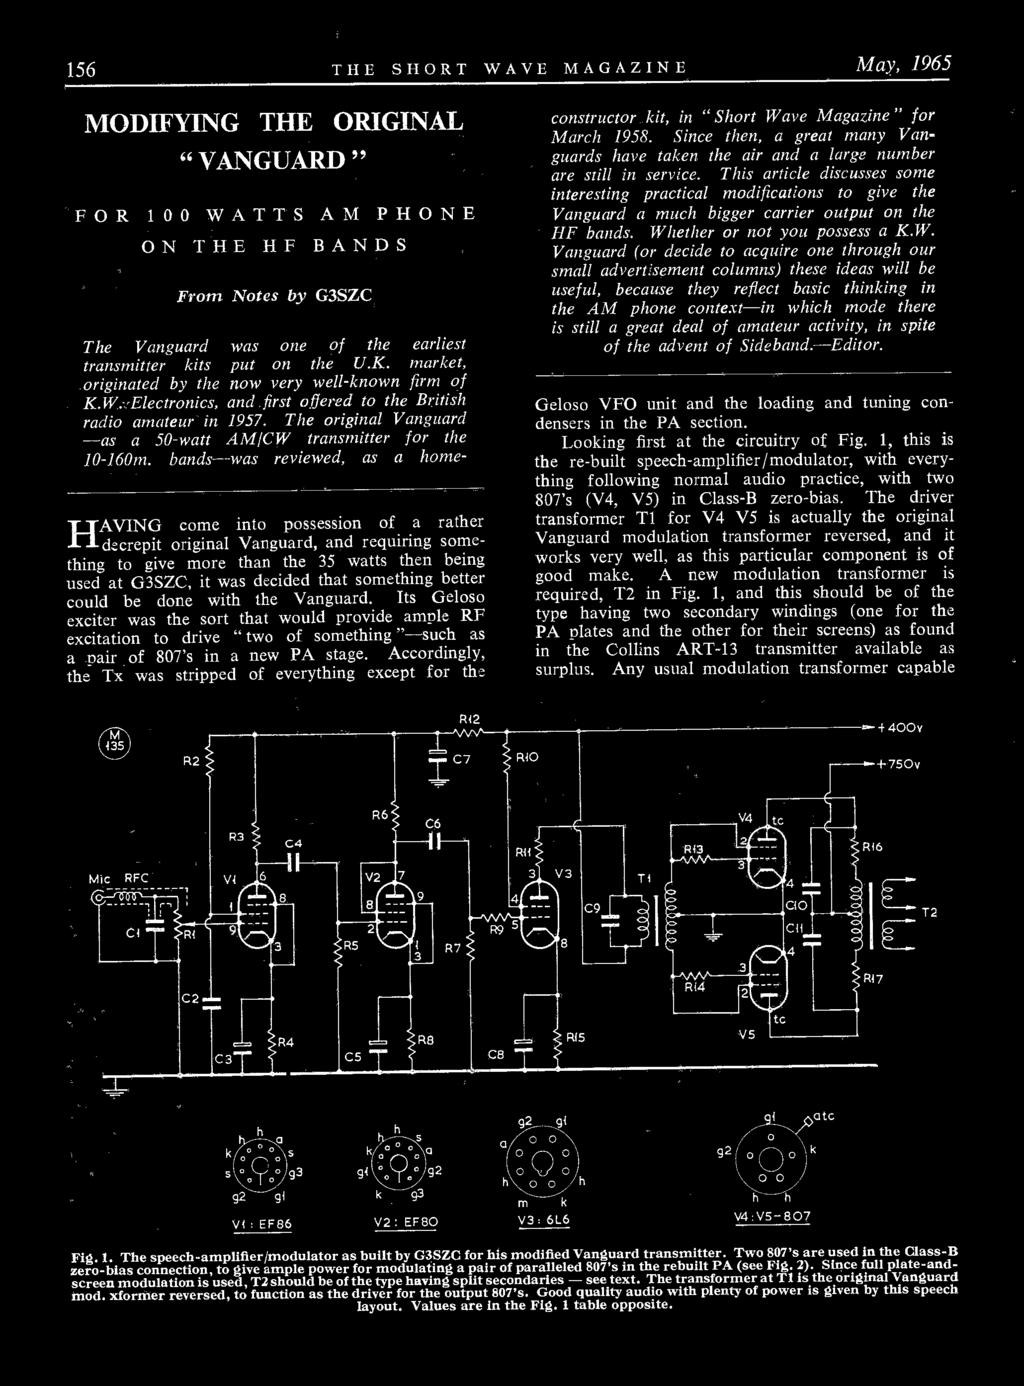 Kw Models For 1965 Ssb Transceiver 600 Linear Amp 2000a Am Cw Ham Bands Transmitter The Uk Market Originated By Now Very Well Known Firm Of